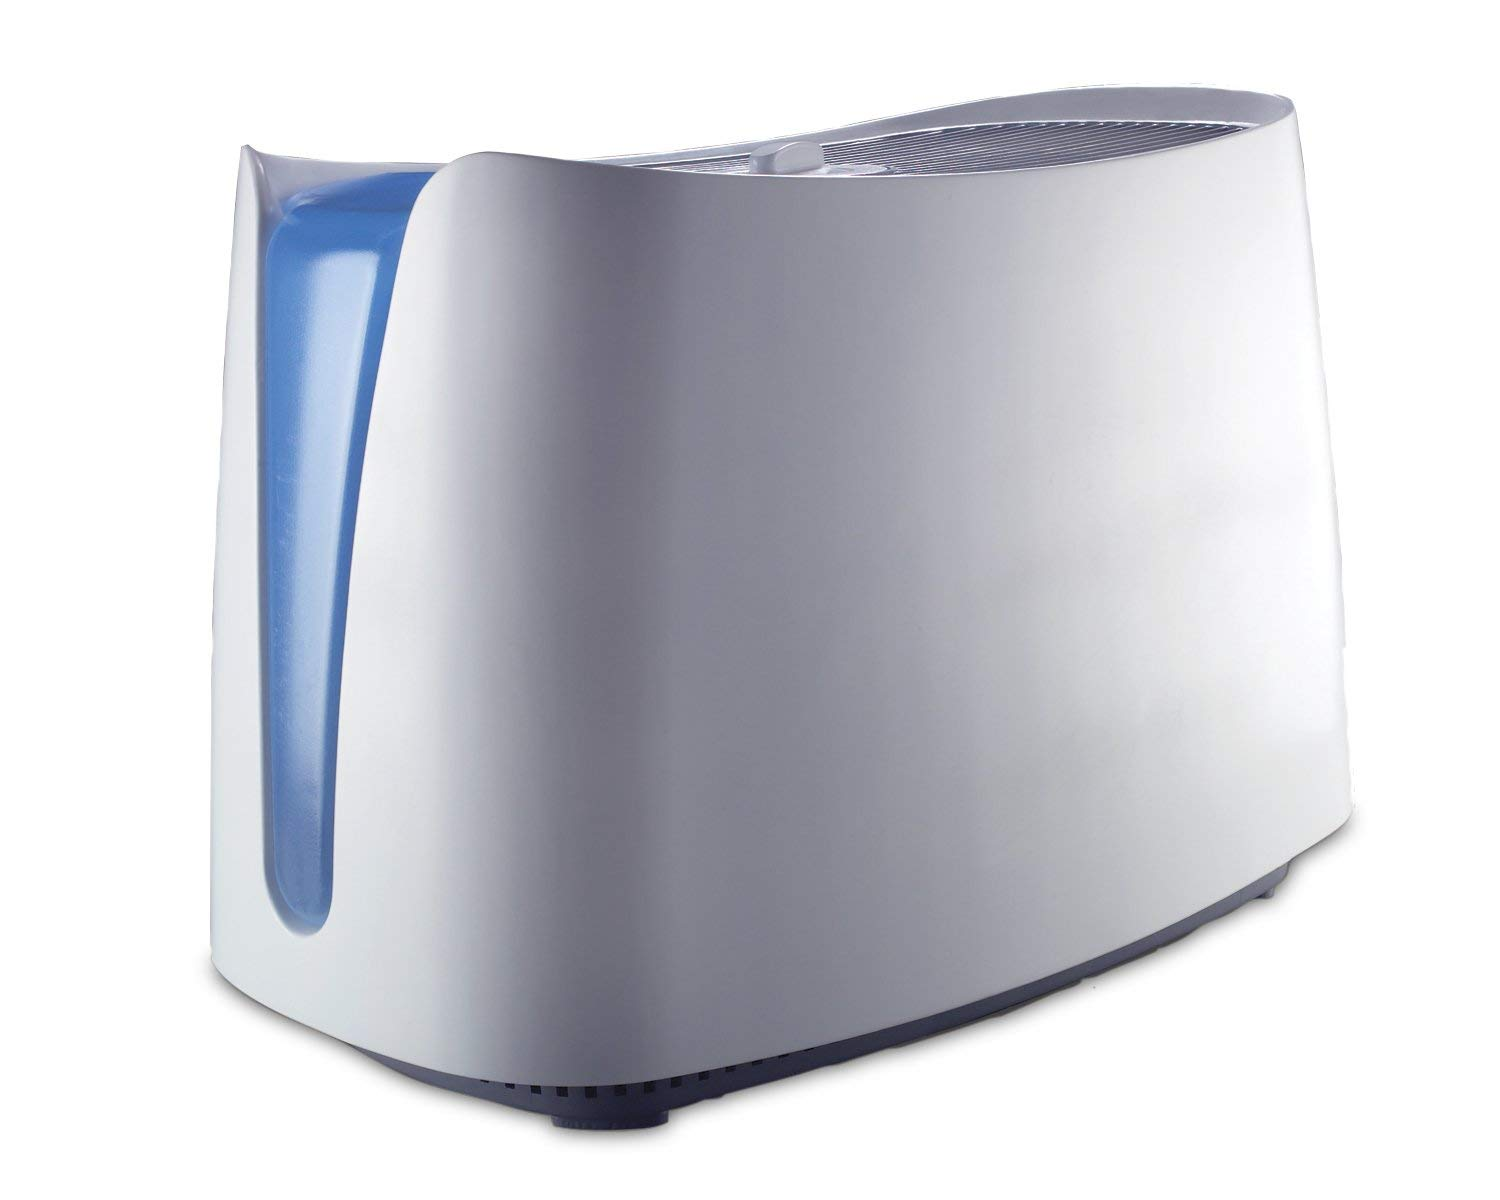 Honeywell HCM350W Germ Free Cool Mist Best Humidifier Review